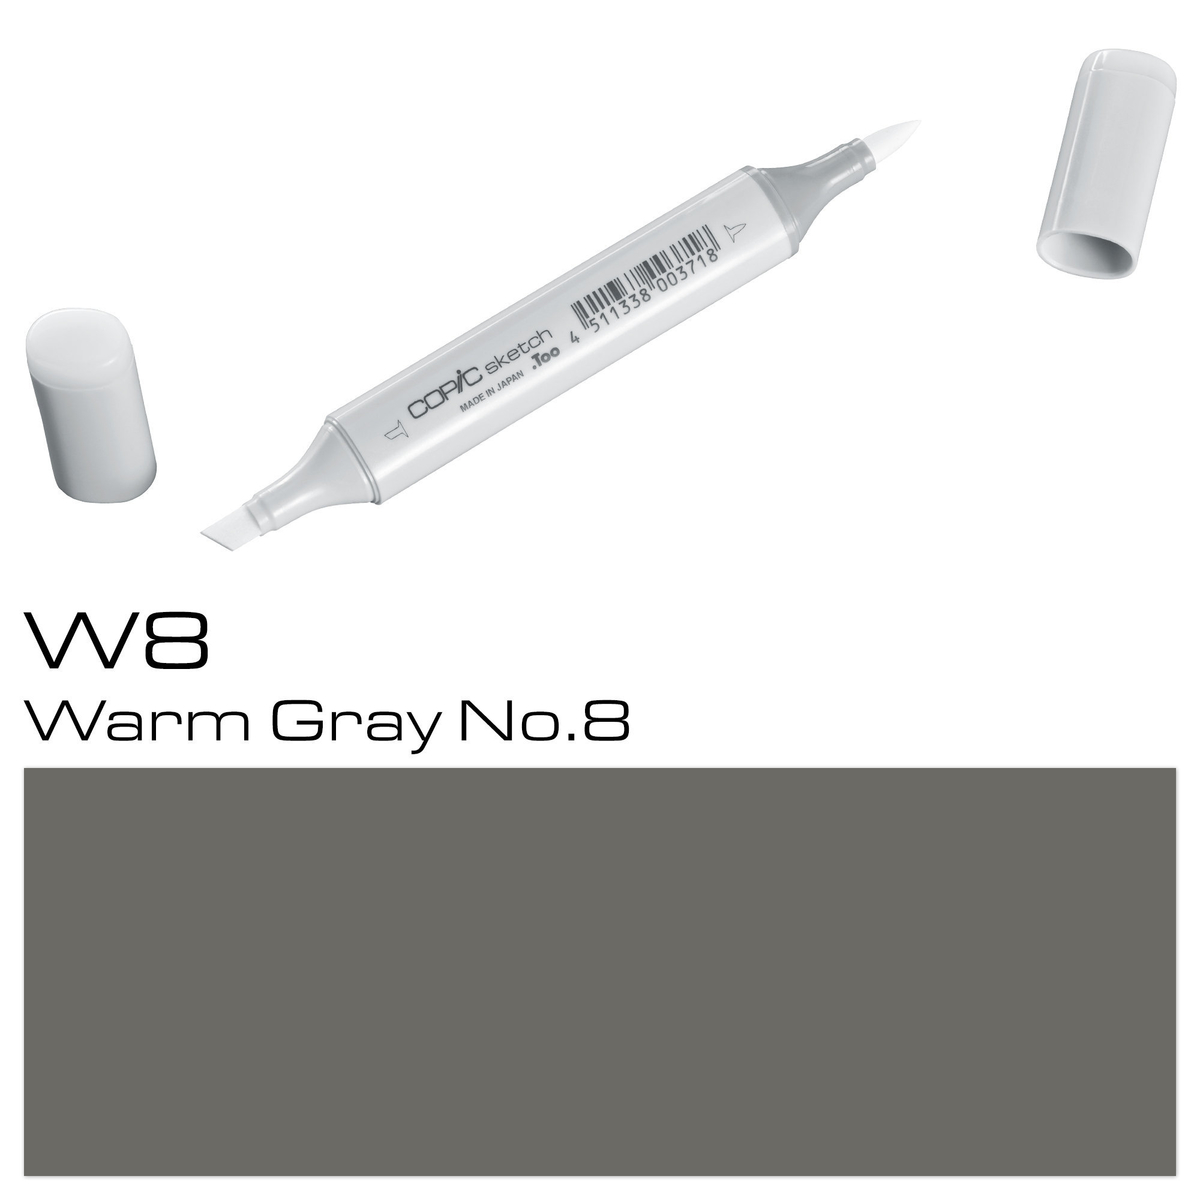 Copic Sketch W 8 warm gray